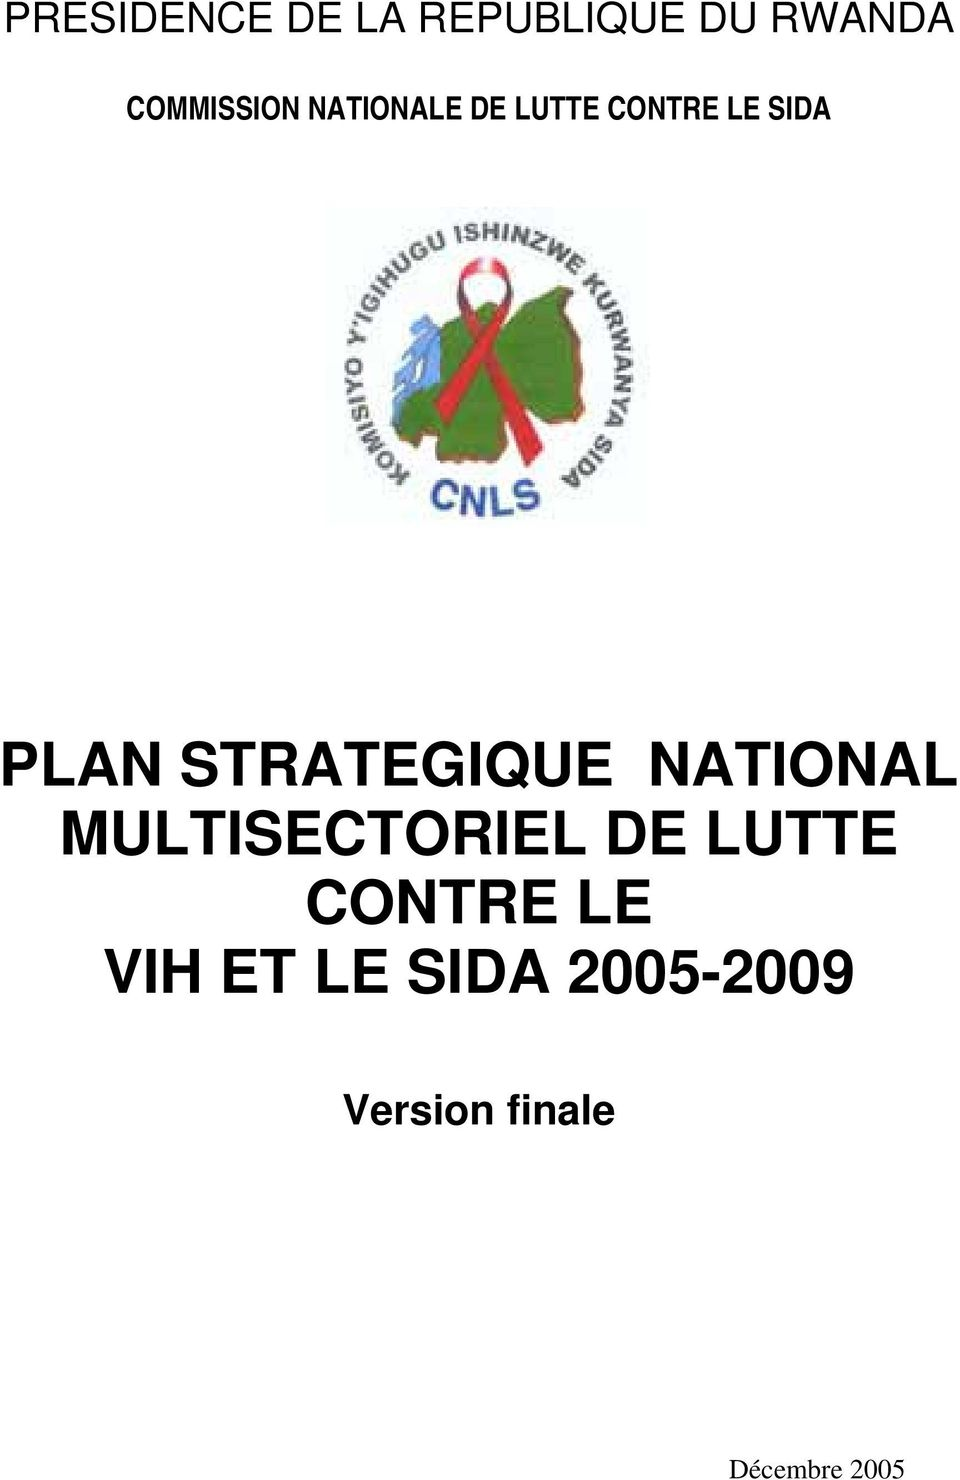 STRATEGIQUE NATIONAL MULTISECTORIEL DE LUTTE